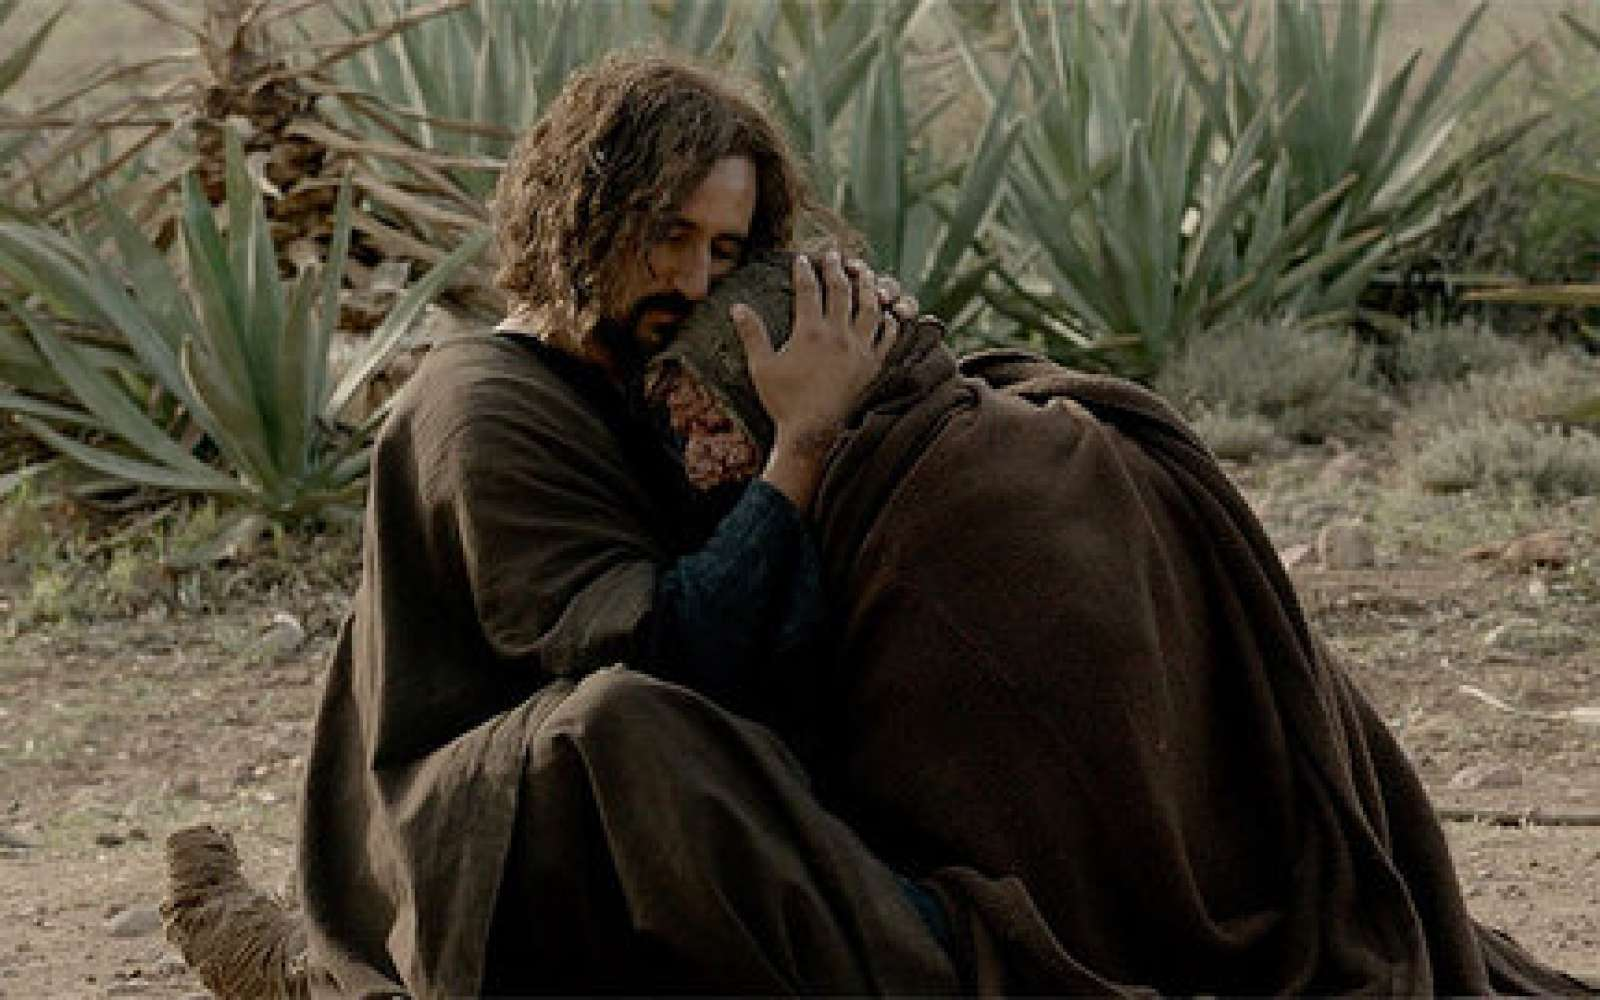 12 Bible Quotes That Prove Jesus Would Have Welcomed Refugees With Open Arms